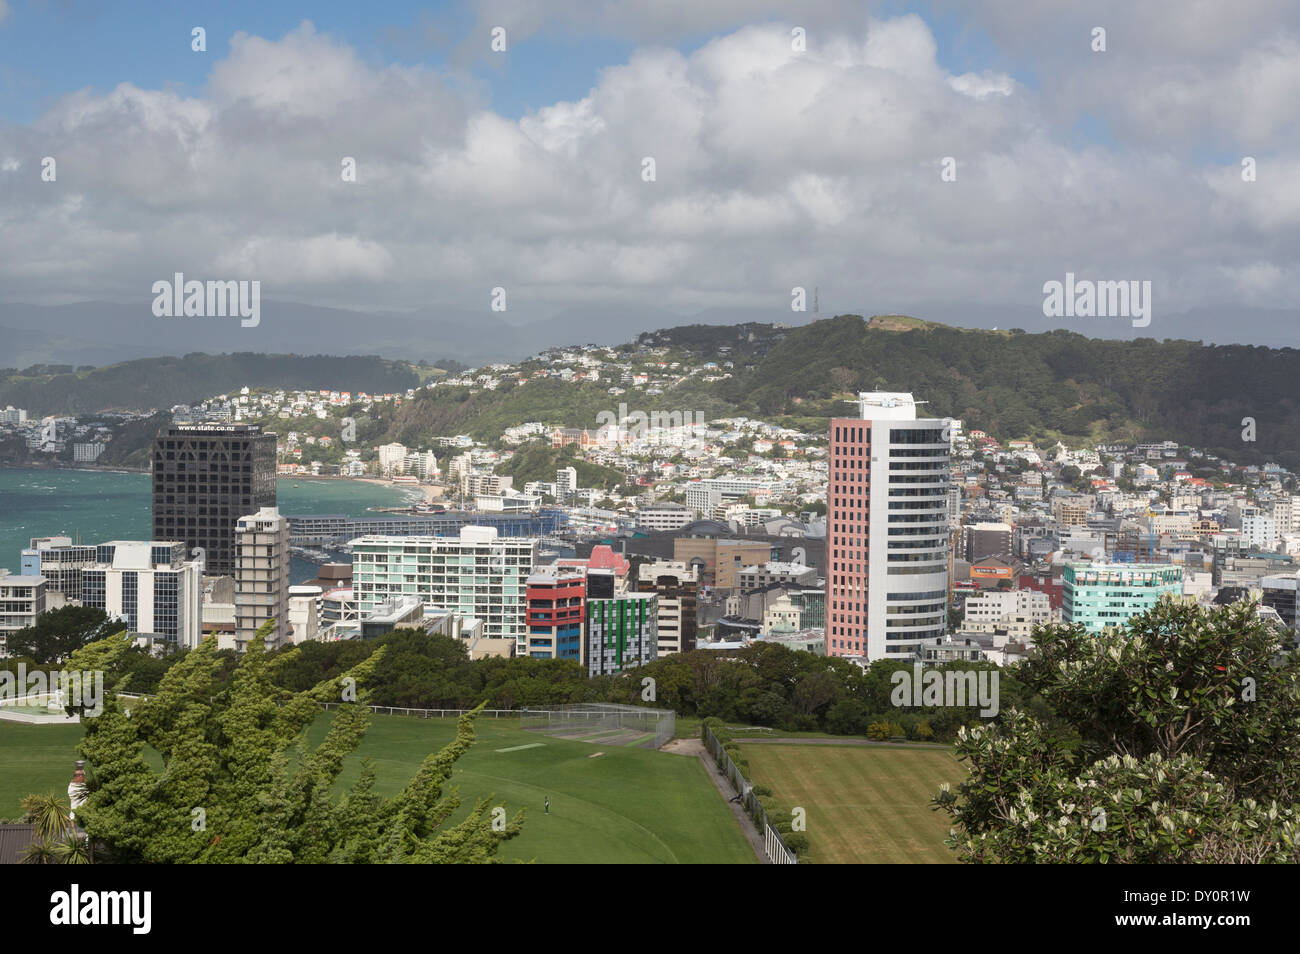 Wellington, New Zealand   Cityscape Of Downtown Skyscrapers And Office  Buildings In CBD Financial District